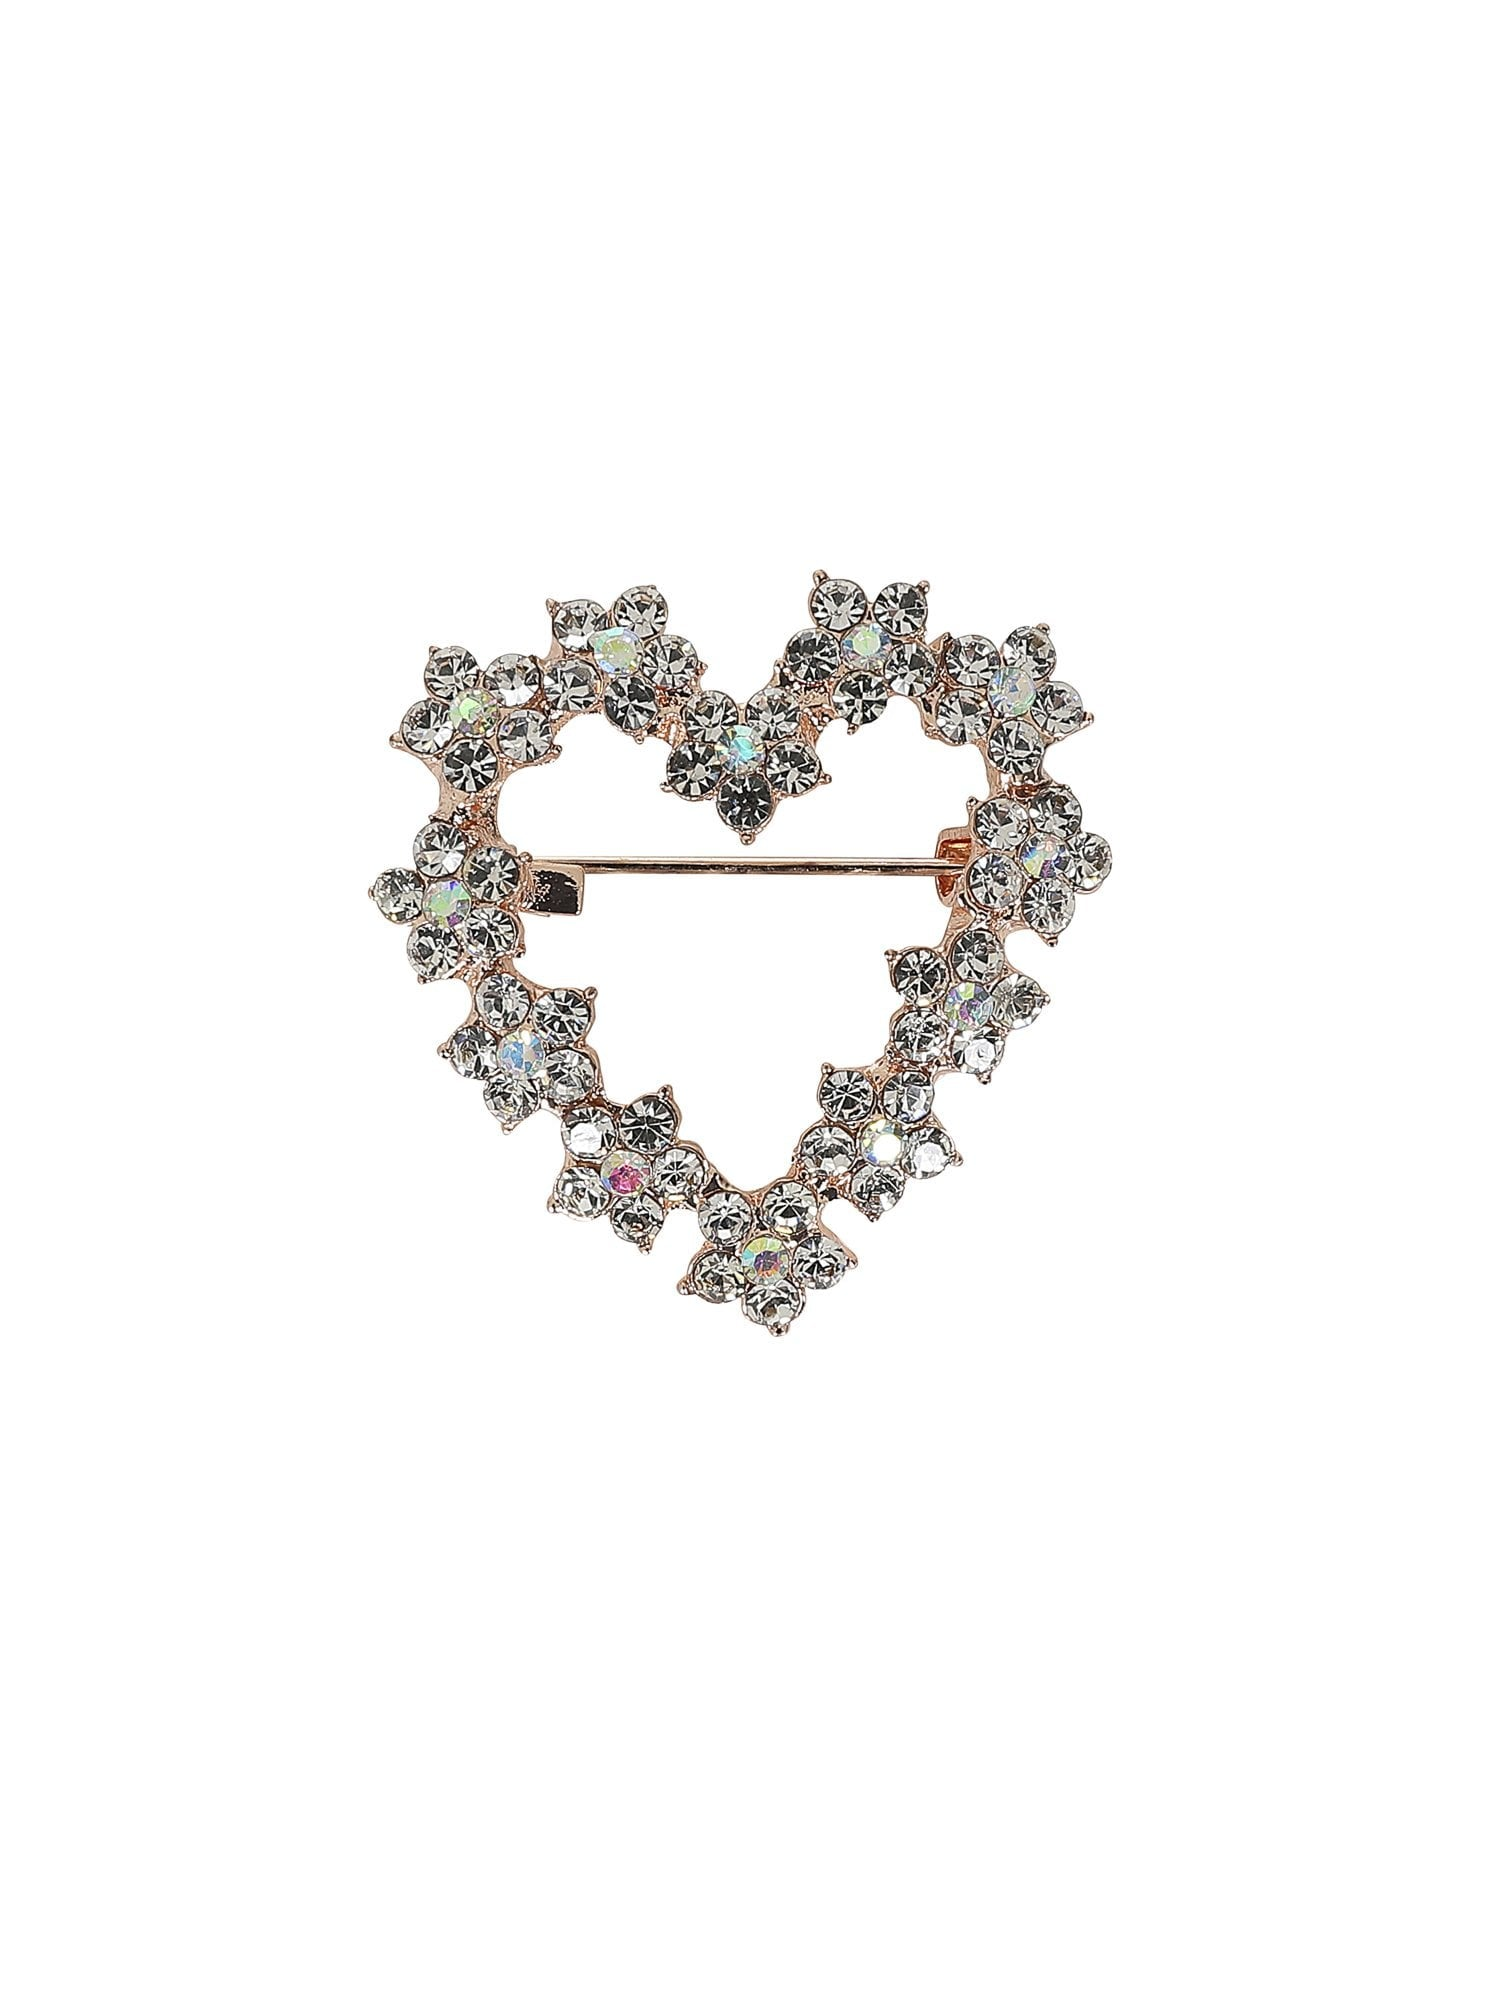 Sweetheart Brooch